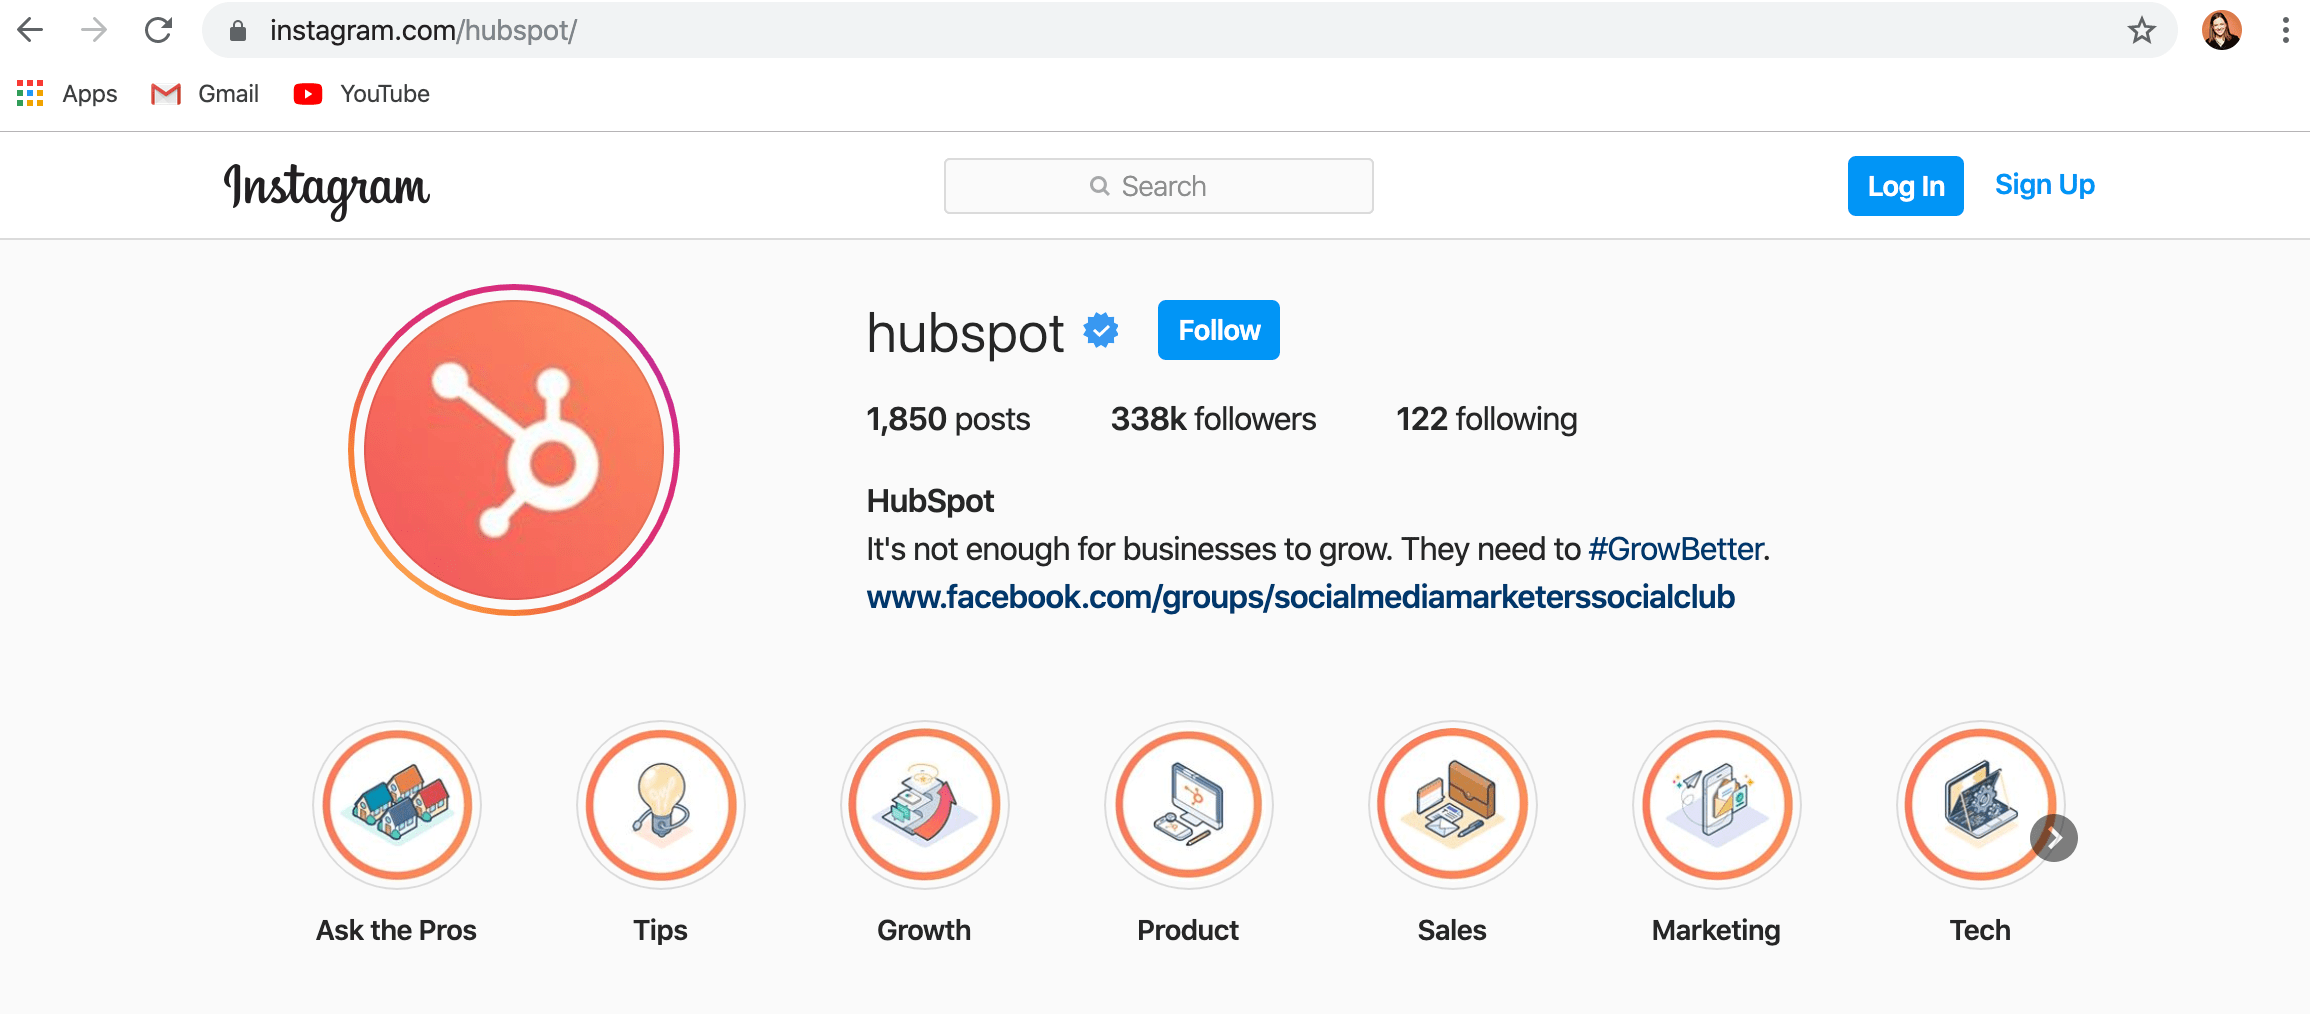 desktop version of hubspot instagram account